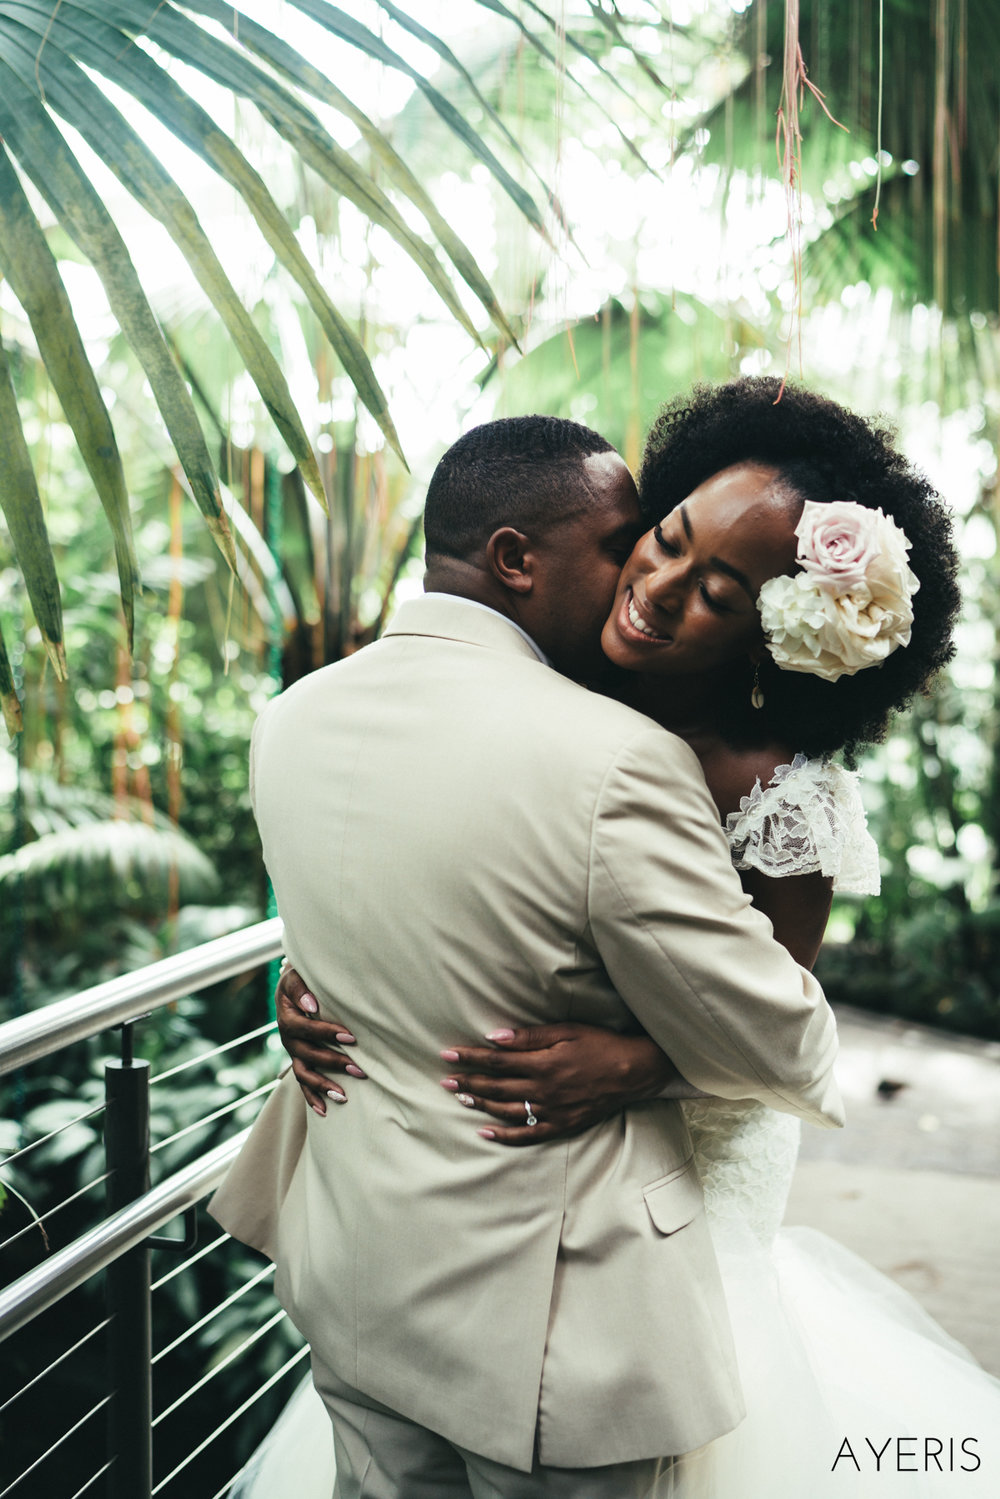 Andrea+Earl's Atlanta Wedding at The Foundry at Puritan Mill by AYERIS Weddings-15.jpg